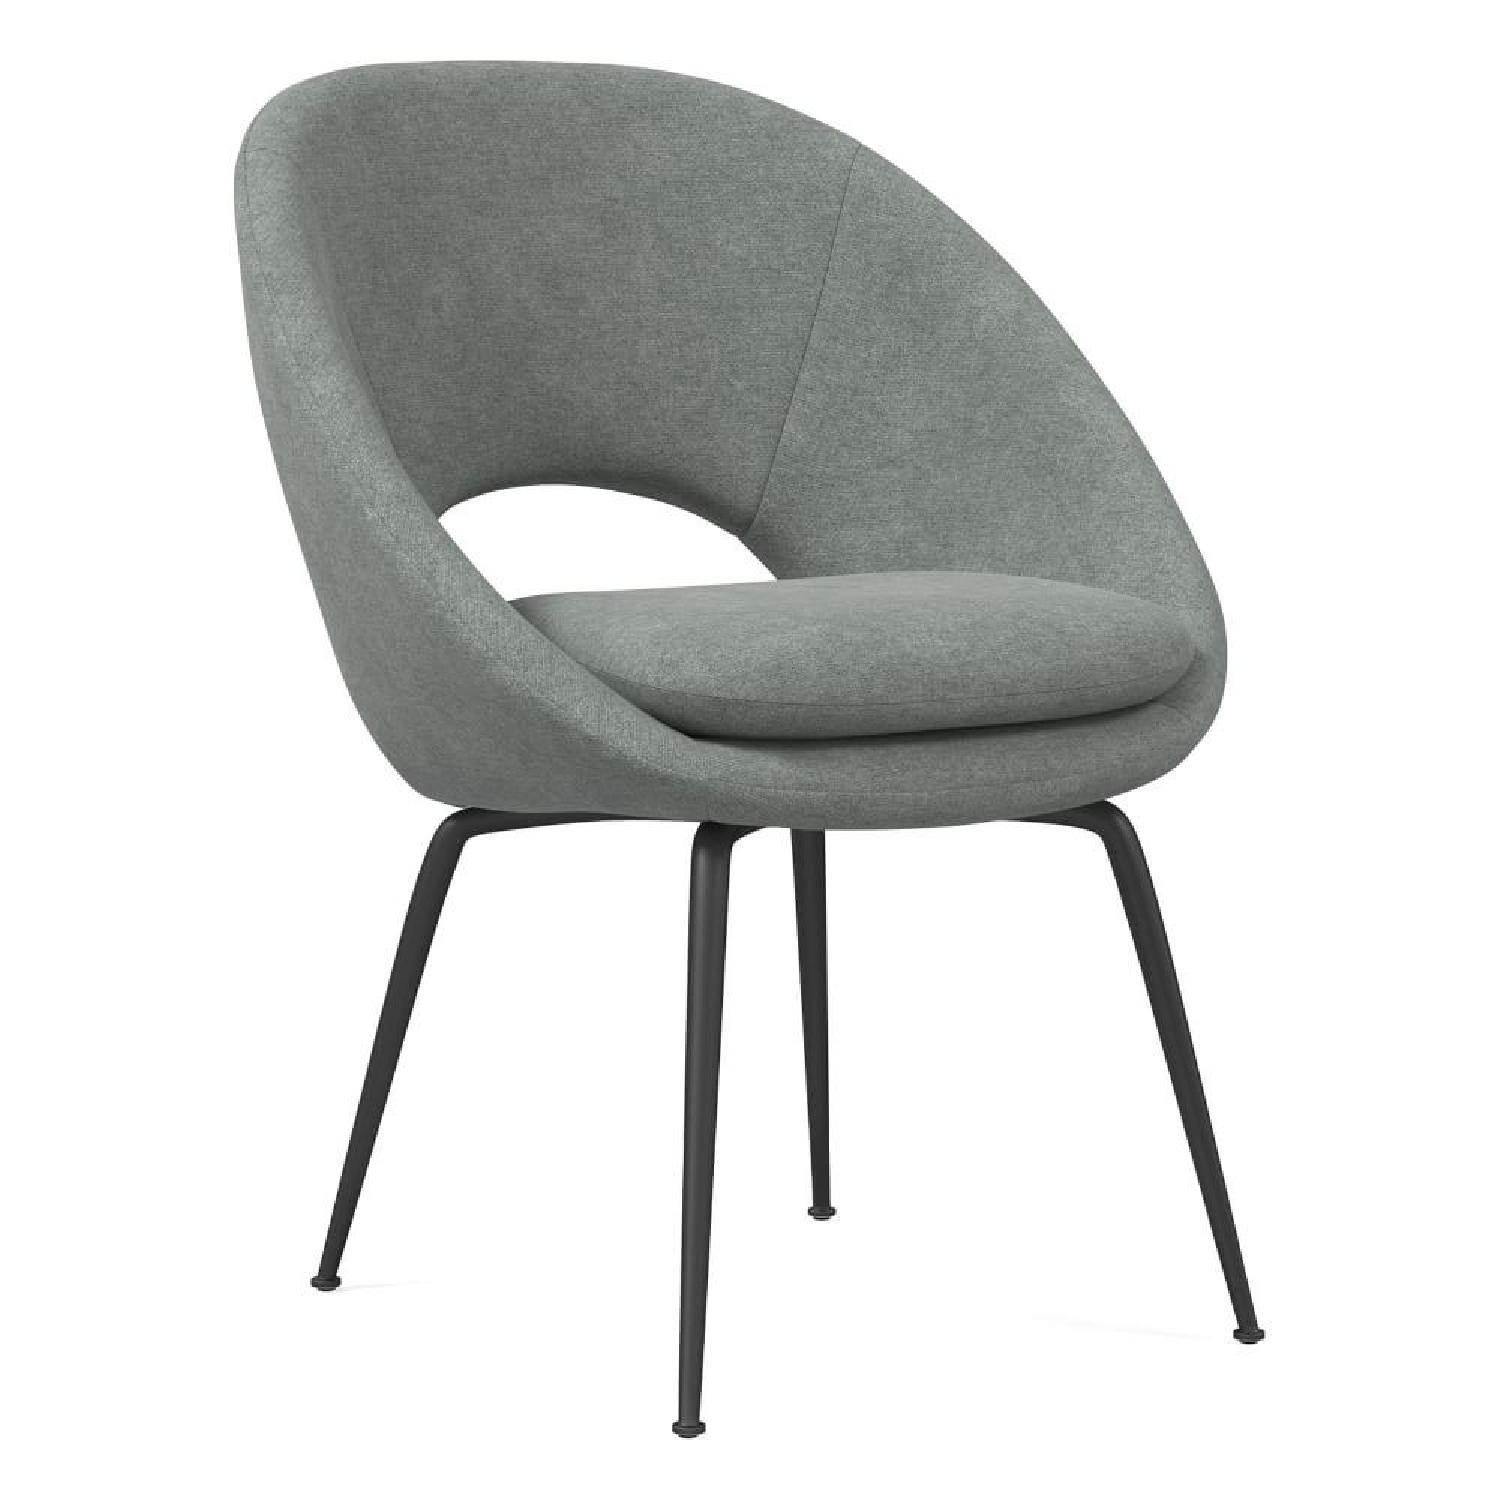 West Elm Orb Dining Chairs - image-10